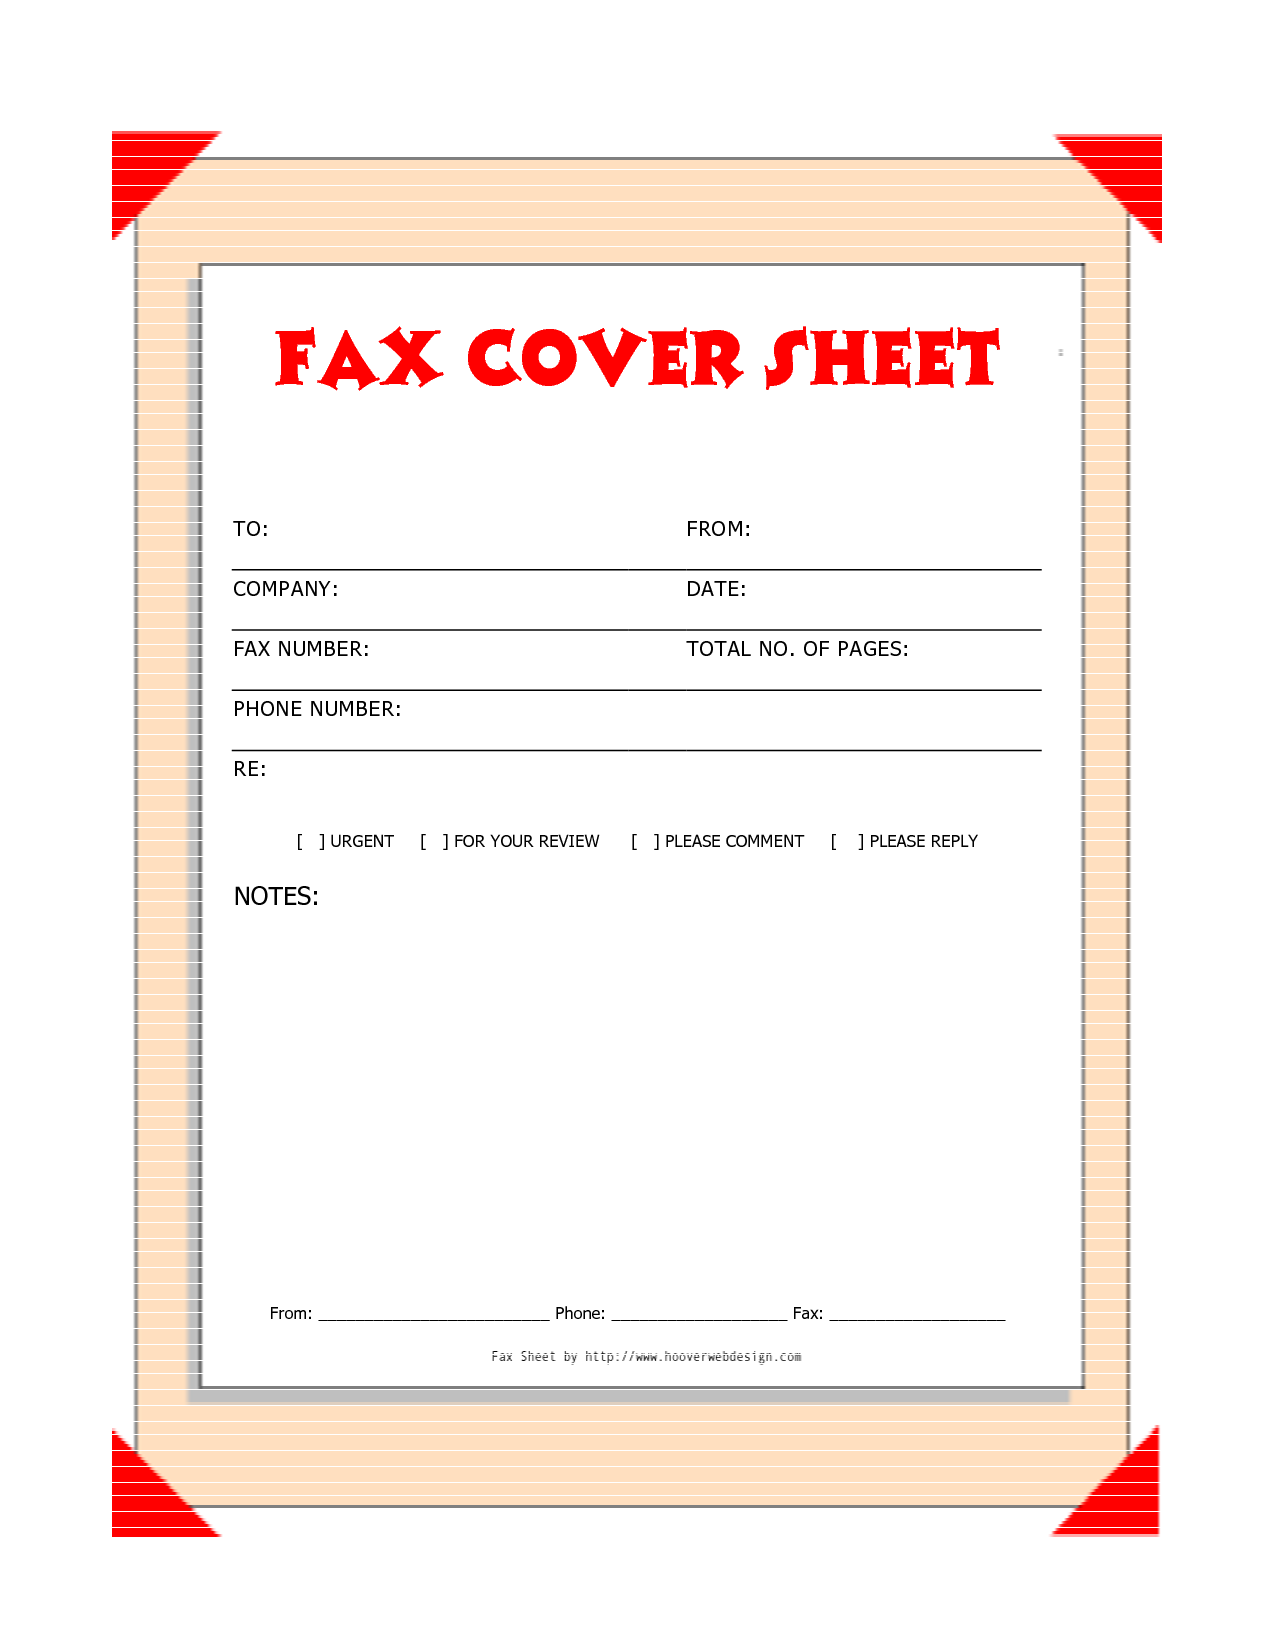 Free Downloads Fax Covers Sheets | Free Printable Fax Cover Sheet Template  Red   Download As  Fax Template For Word